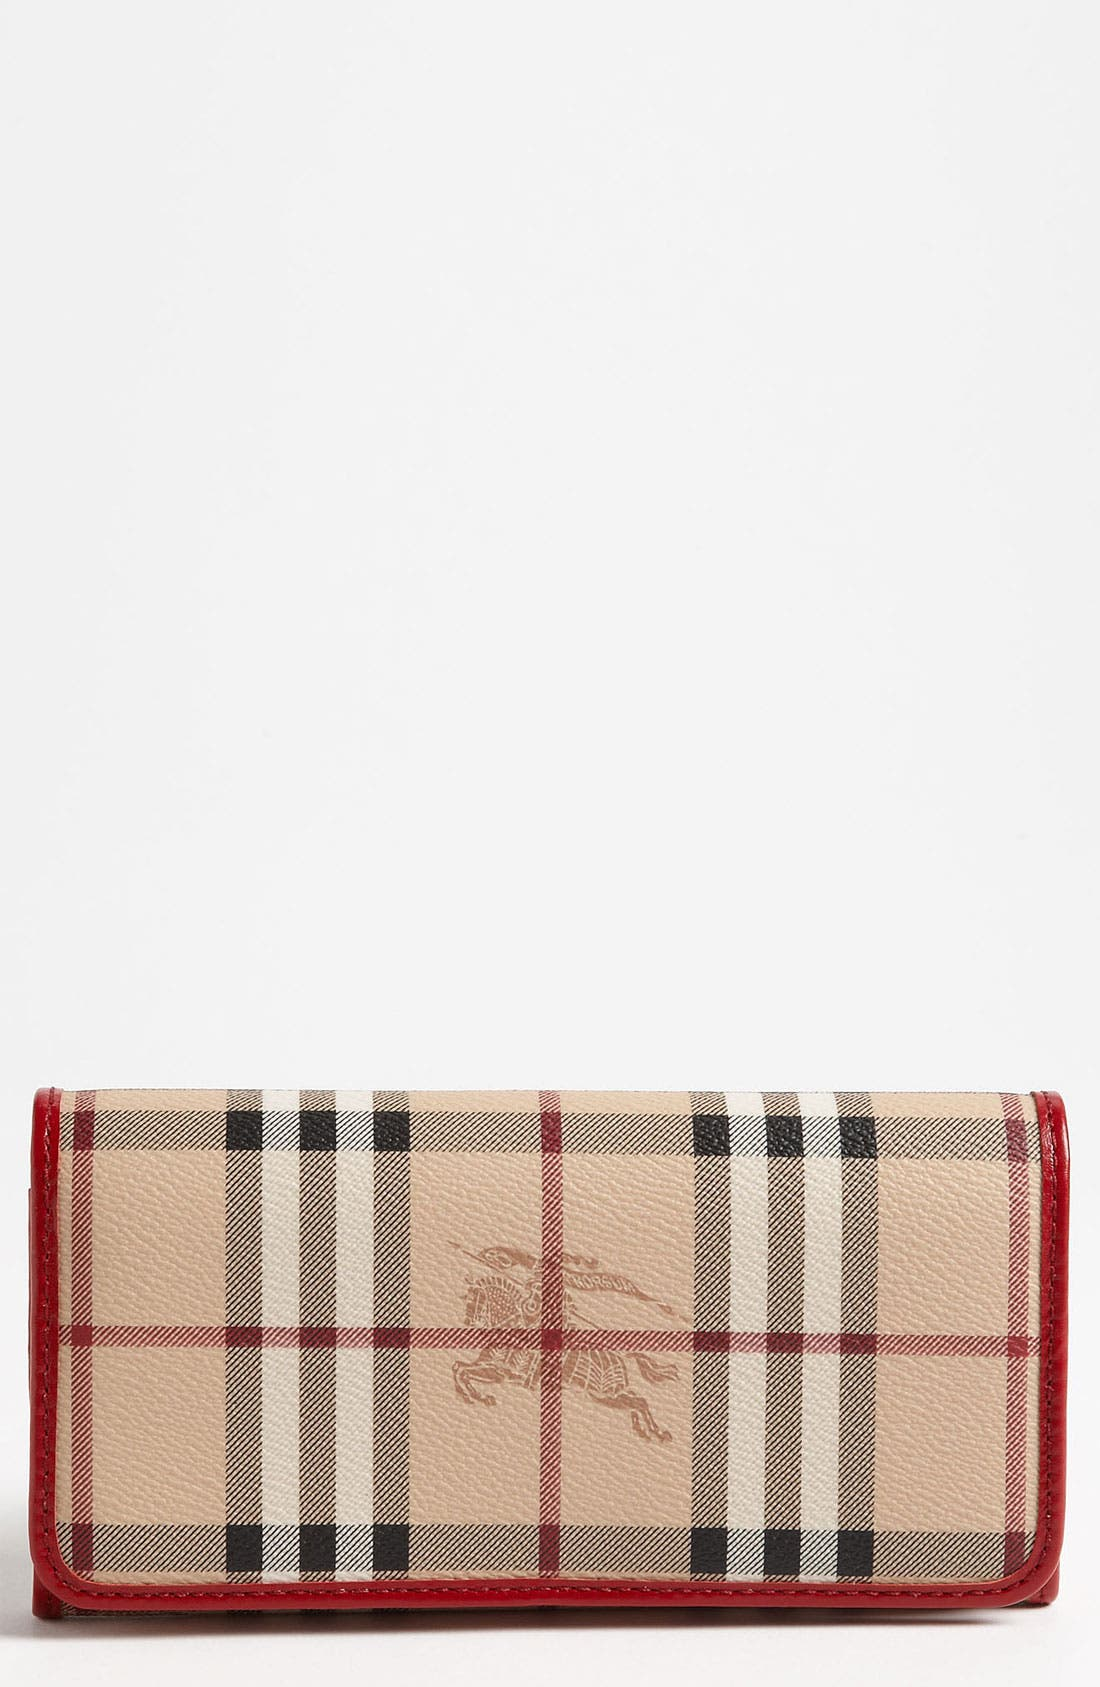 Main Image - Burberry 'Haymarket Check' Flap Wallet